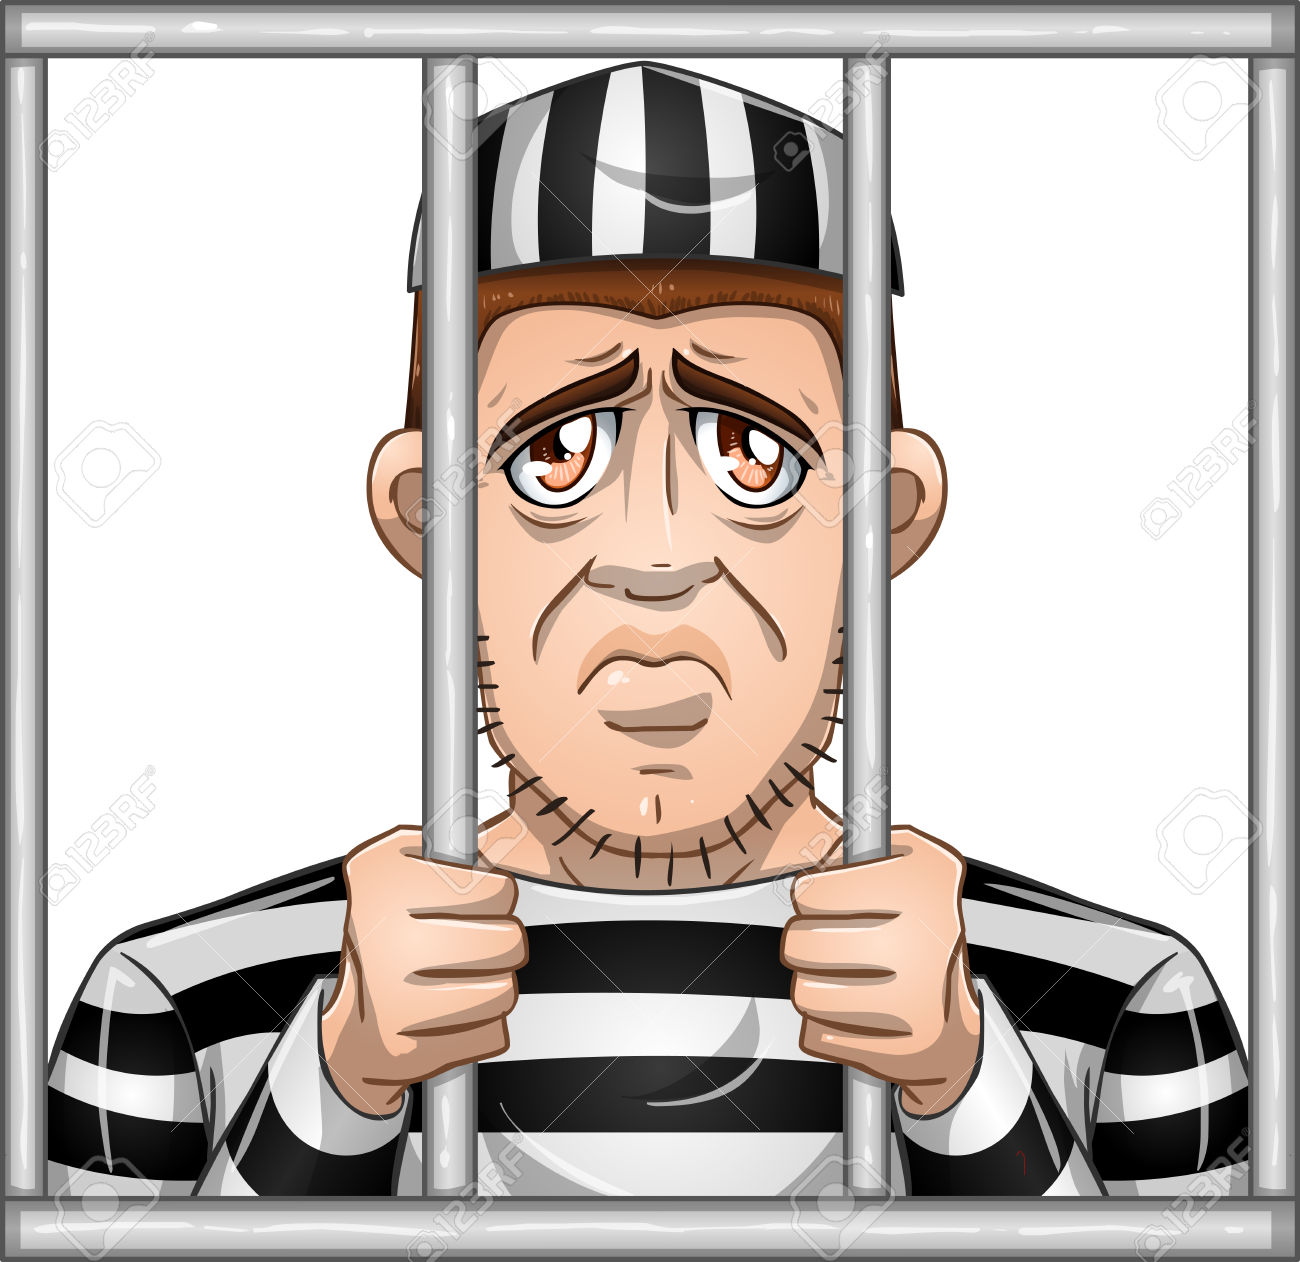 17,040 Jail Stock Illustrations, Cliparts And Royalty Free Jail.